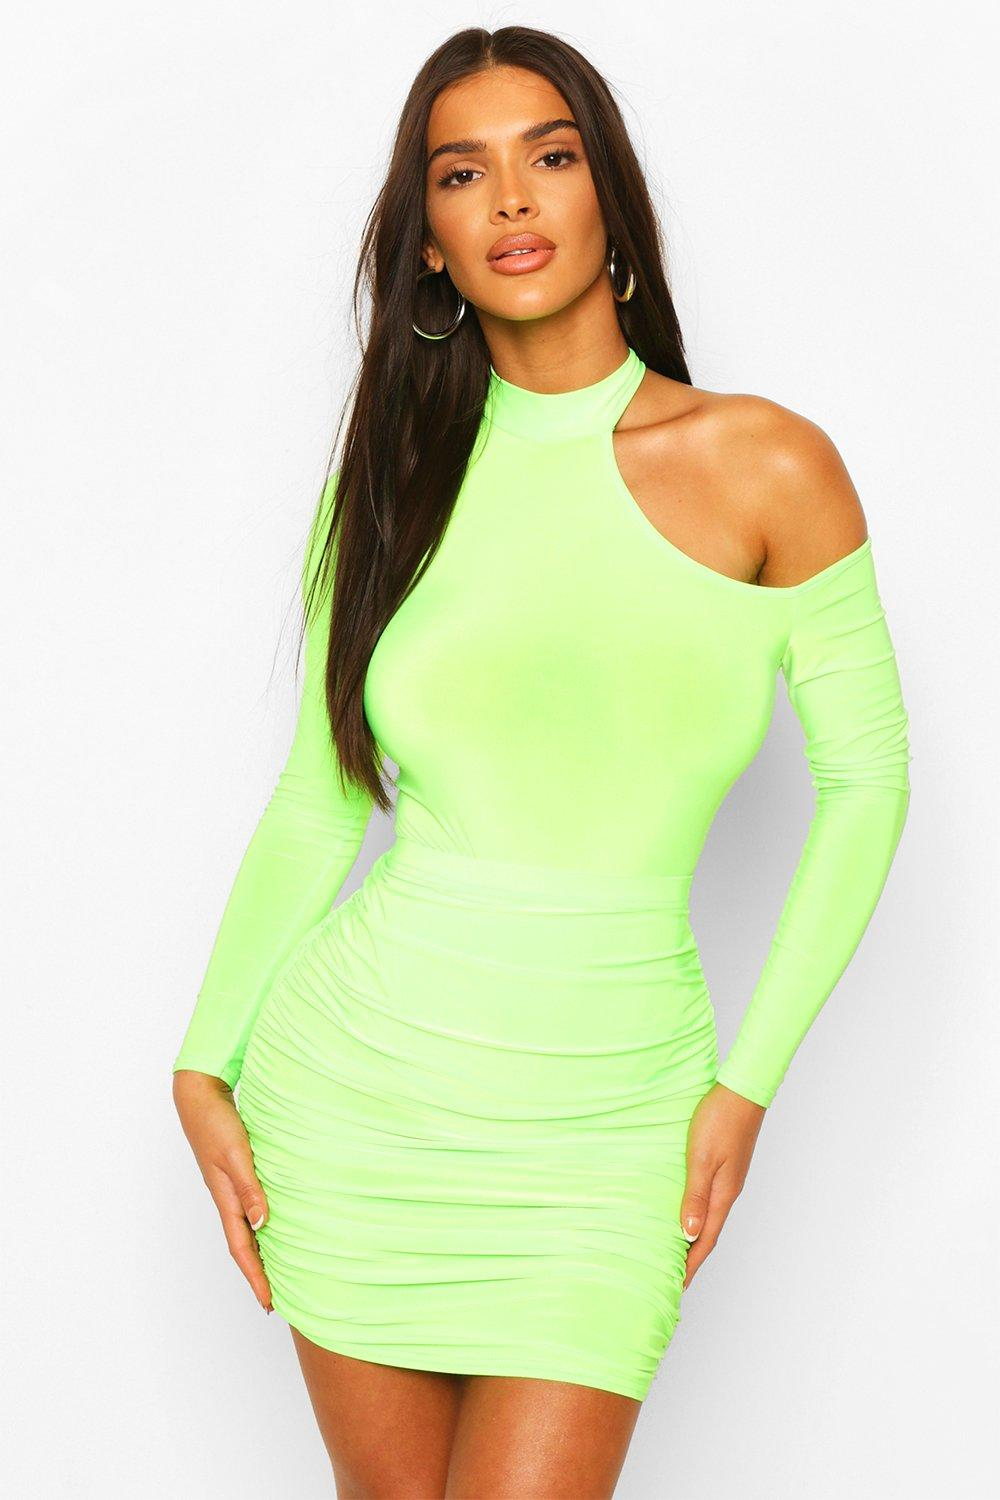 boohoo Womens Cut Out Neon Body Top - Green - 6, Green